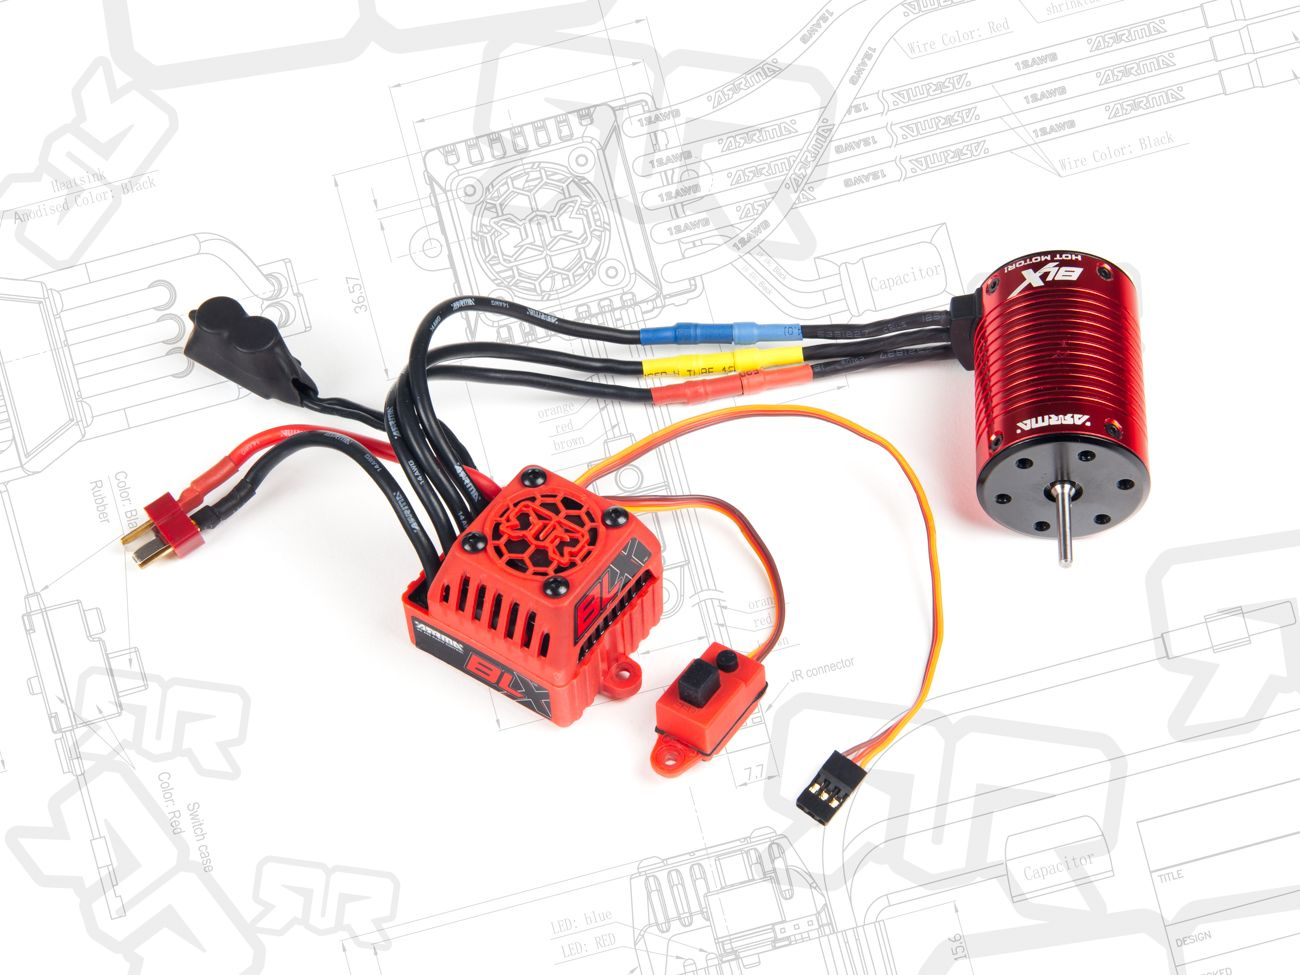 The BLX 80A brushless ESC and powerful 3600kv motor  For RC